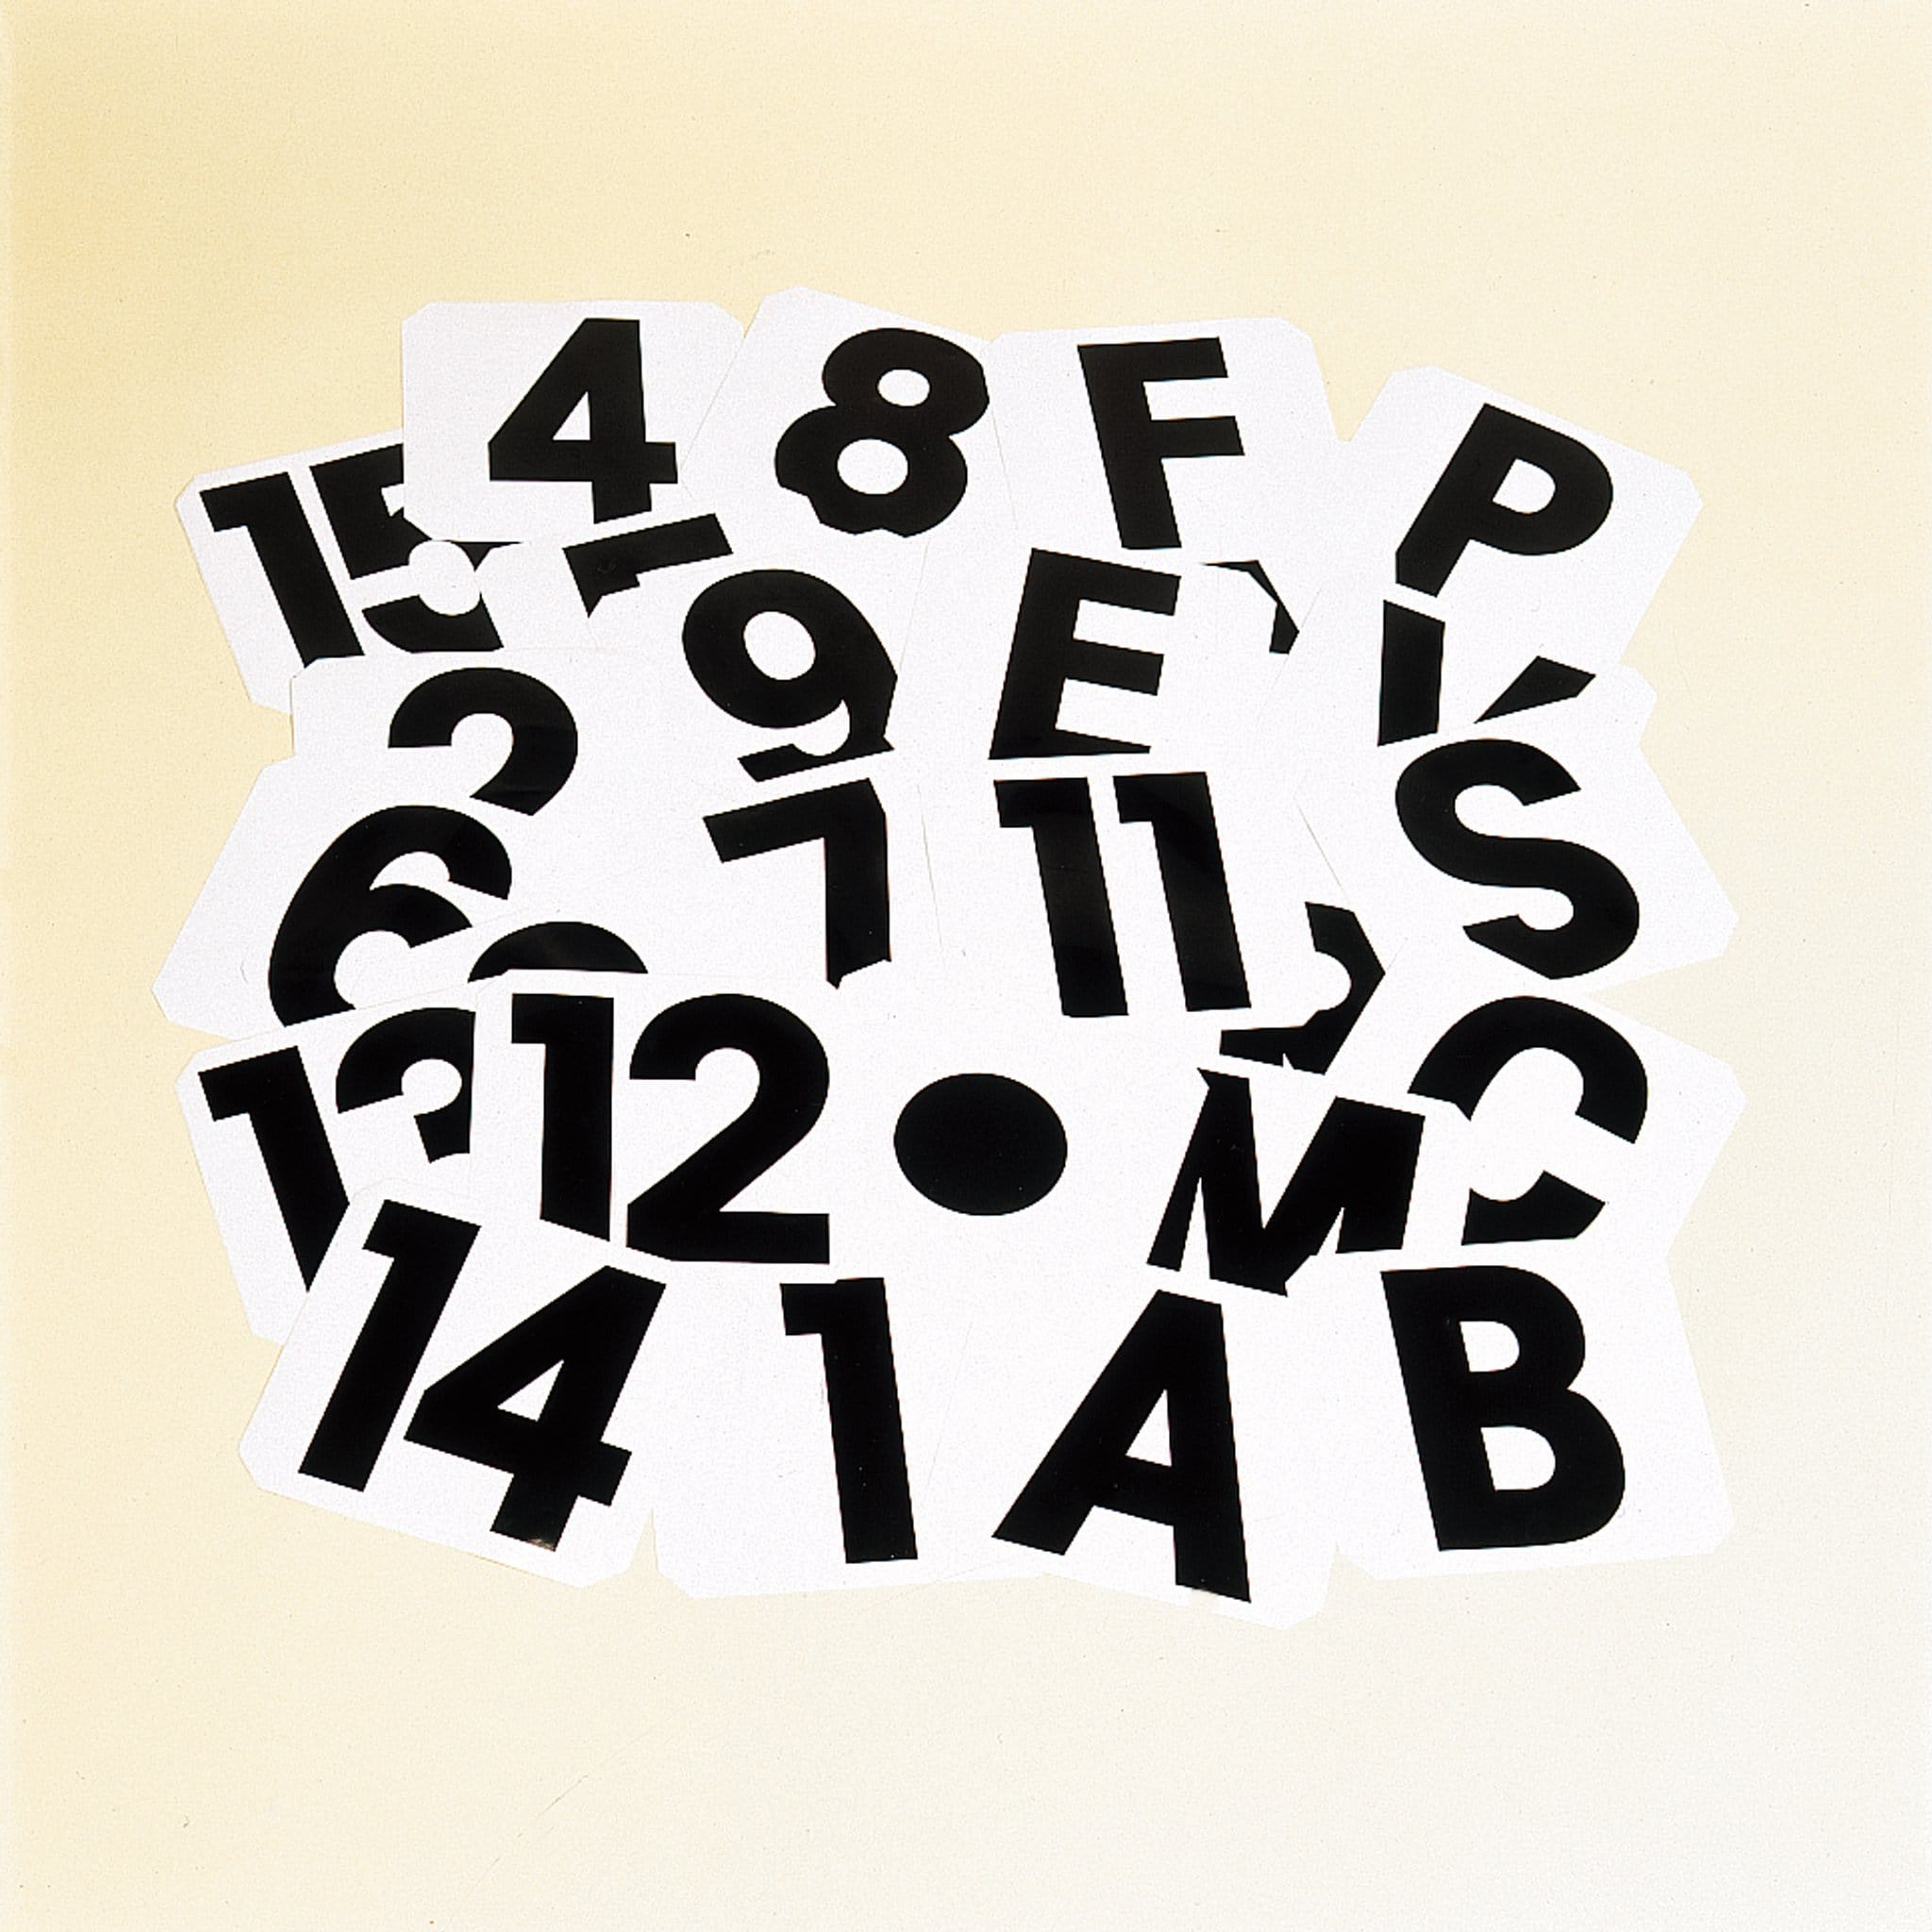 STUBBS Self Adhesive Labels Letter STB1202